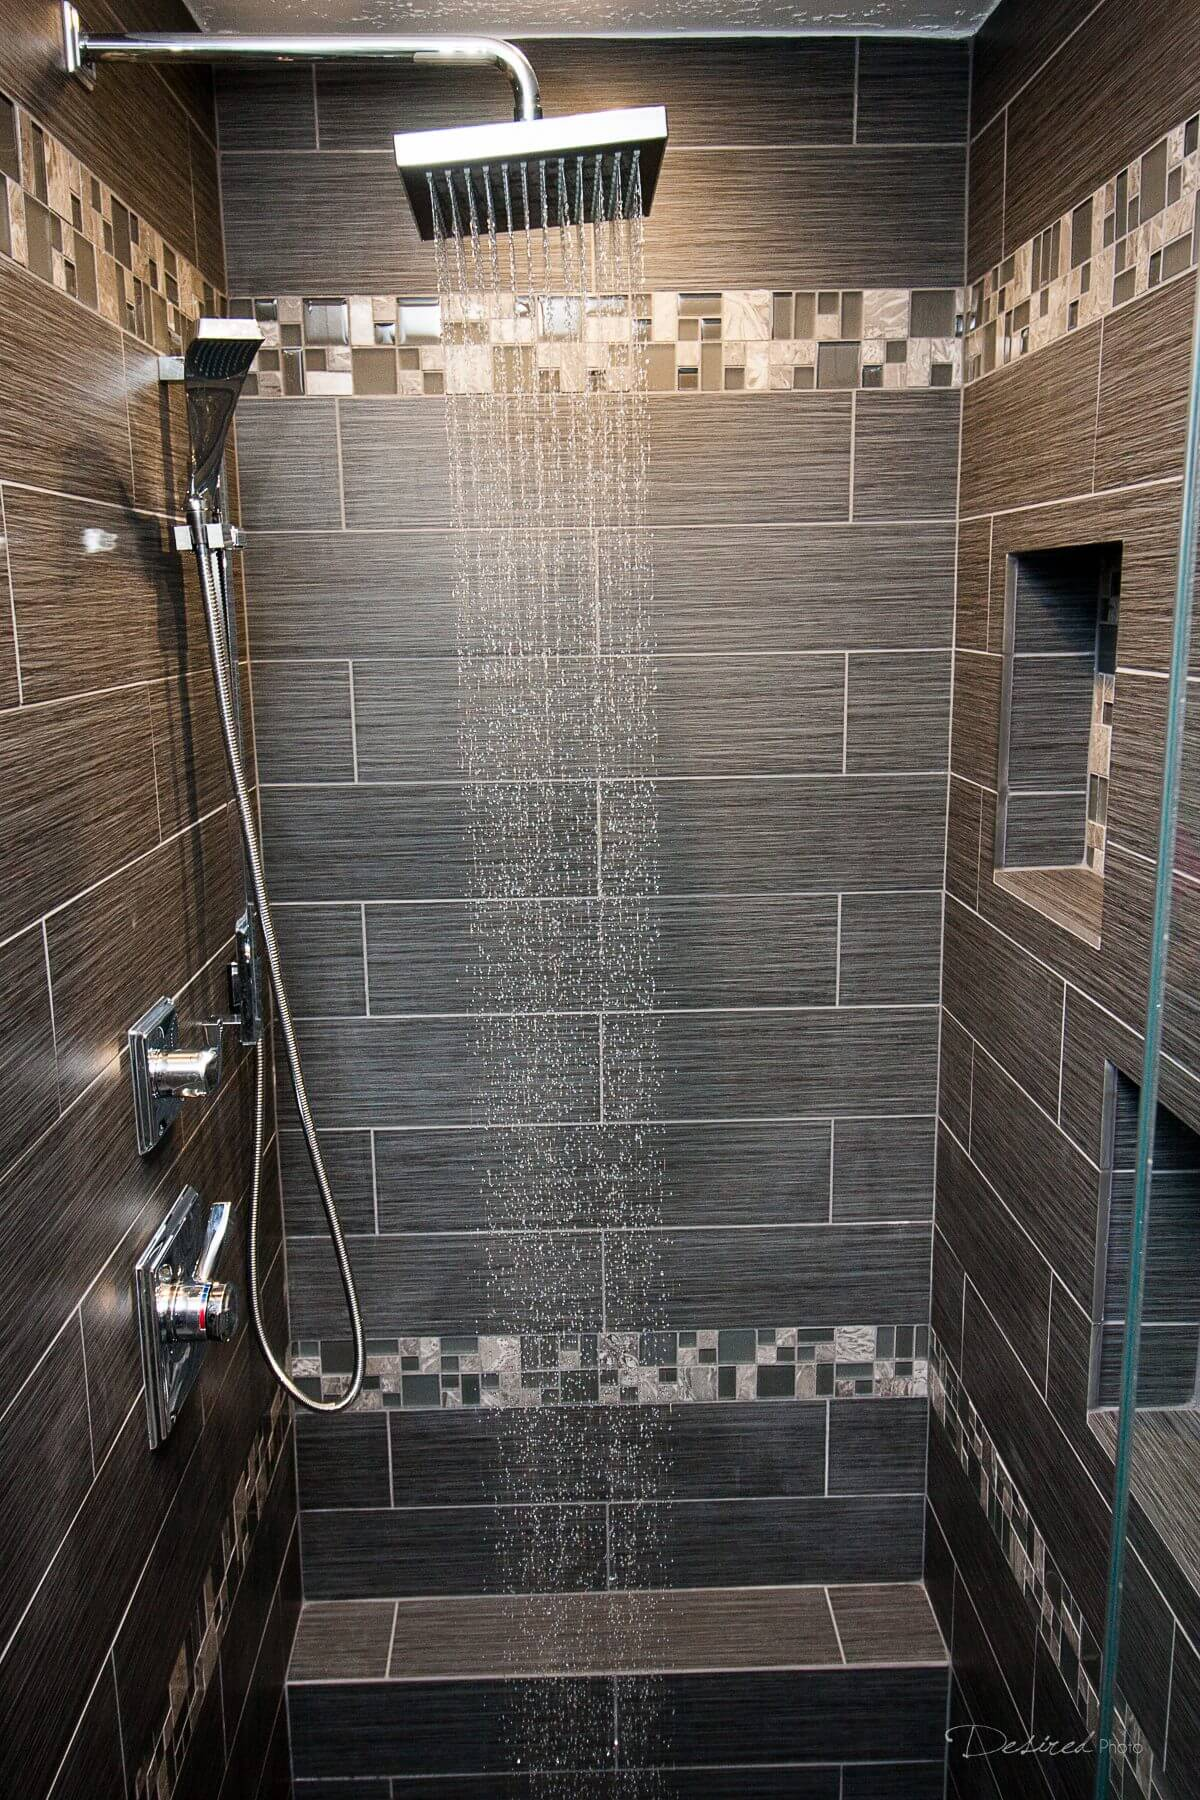 32 Best Shower Tile Ideas and Designs for 2018 Tile Patterns For Bathrooms on tile designs for bathrooms, lowe's creative ideas for bathrooms, metal tiles for bathrooms, tile samples for bathrooms, porcelain for bathrooms, tile board for bathrooms, appliances for bathrooms, subway tile for bathrooms, tile trends for bathrooms, tile floor idea, wood for bathrooms, travertine tile for bathrooms, 4x4 tiles for bathrooms, diy for bathrooms, tile paint for bathrooms, tile pattern ideas, plumbing codes for bathrooms, backsplash tile for bathrooms, bathroom for bathrooms, floor tile for bathrooms,